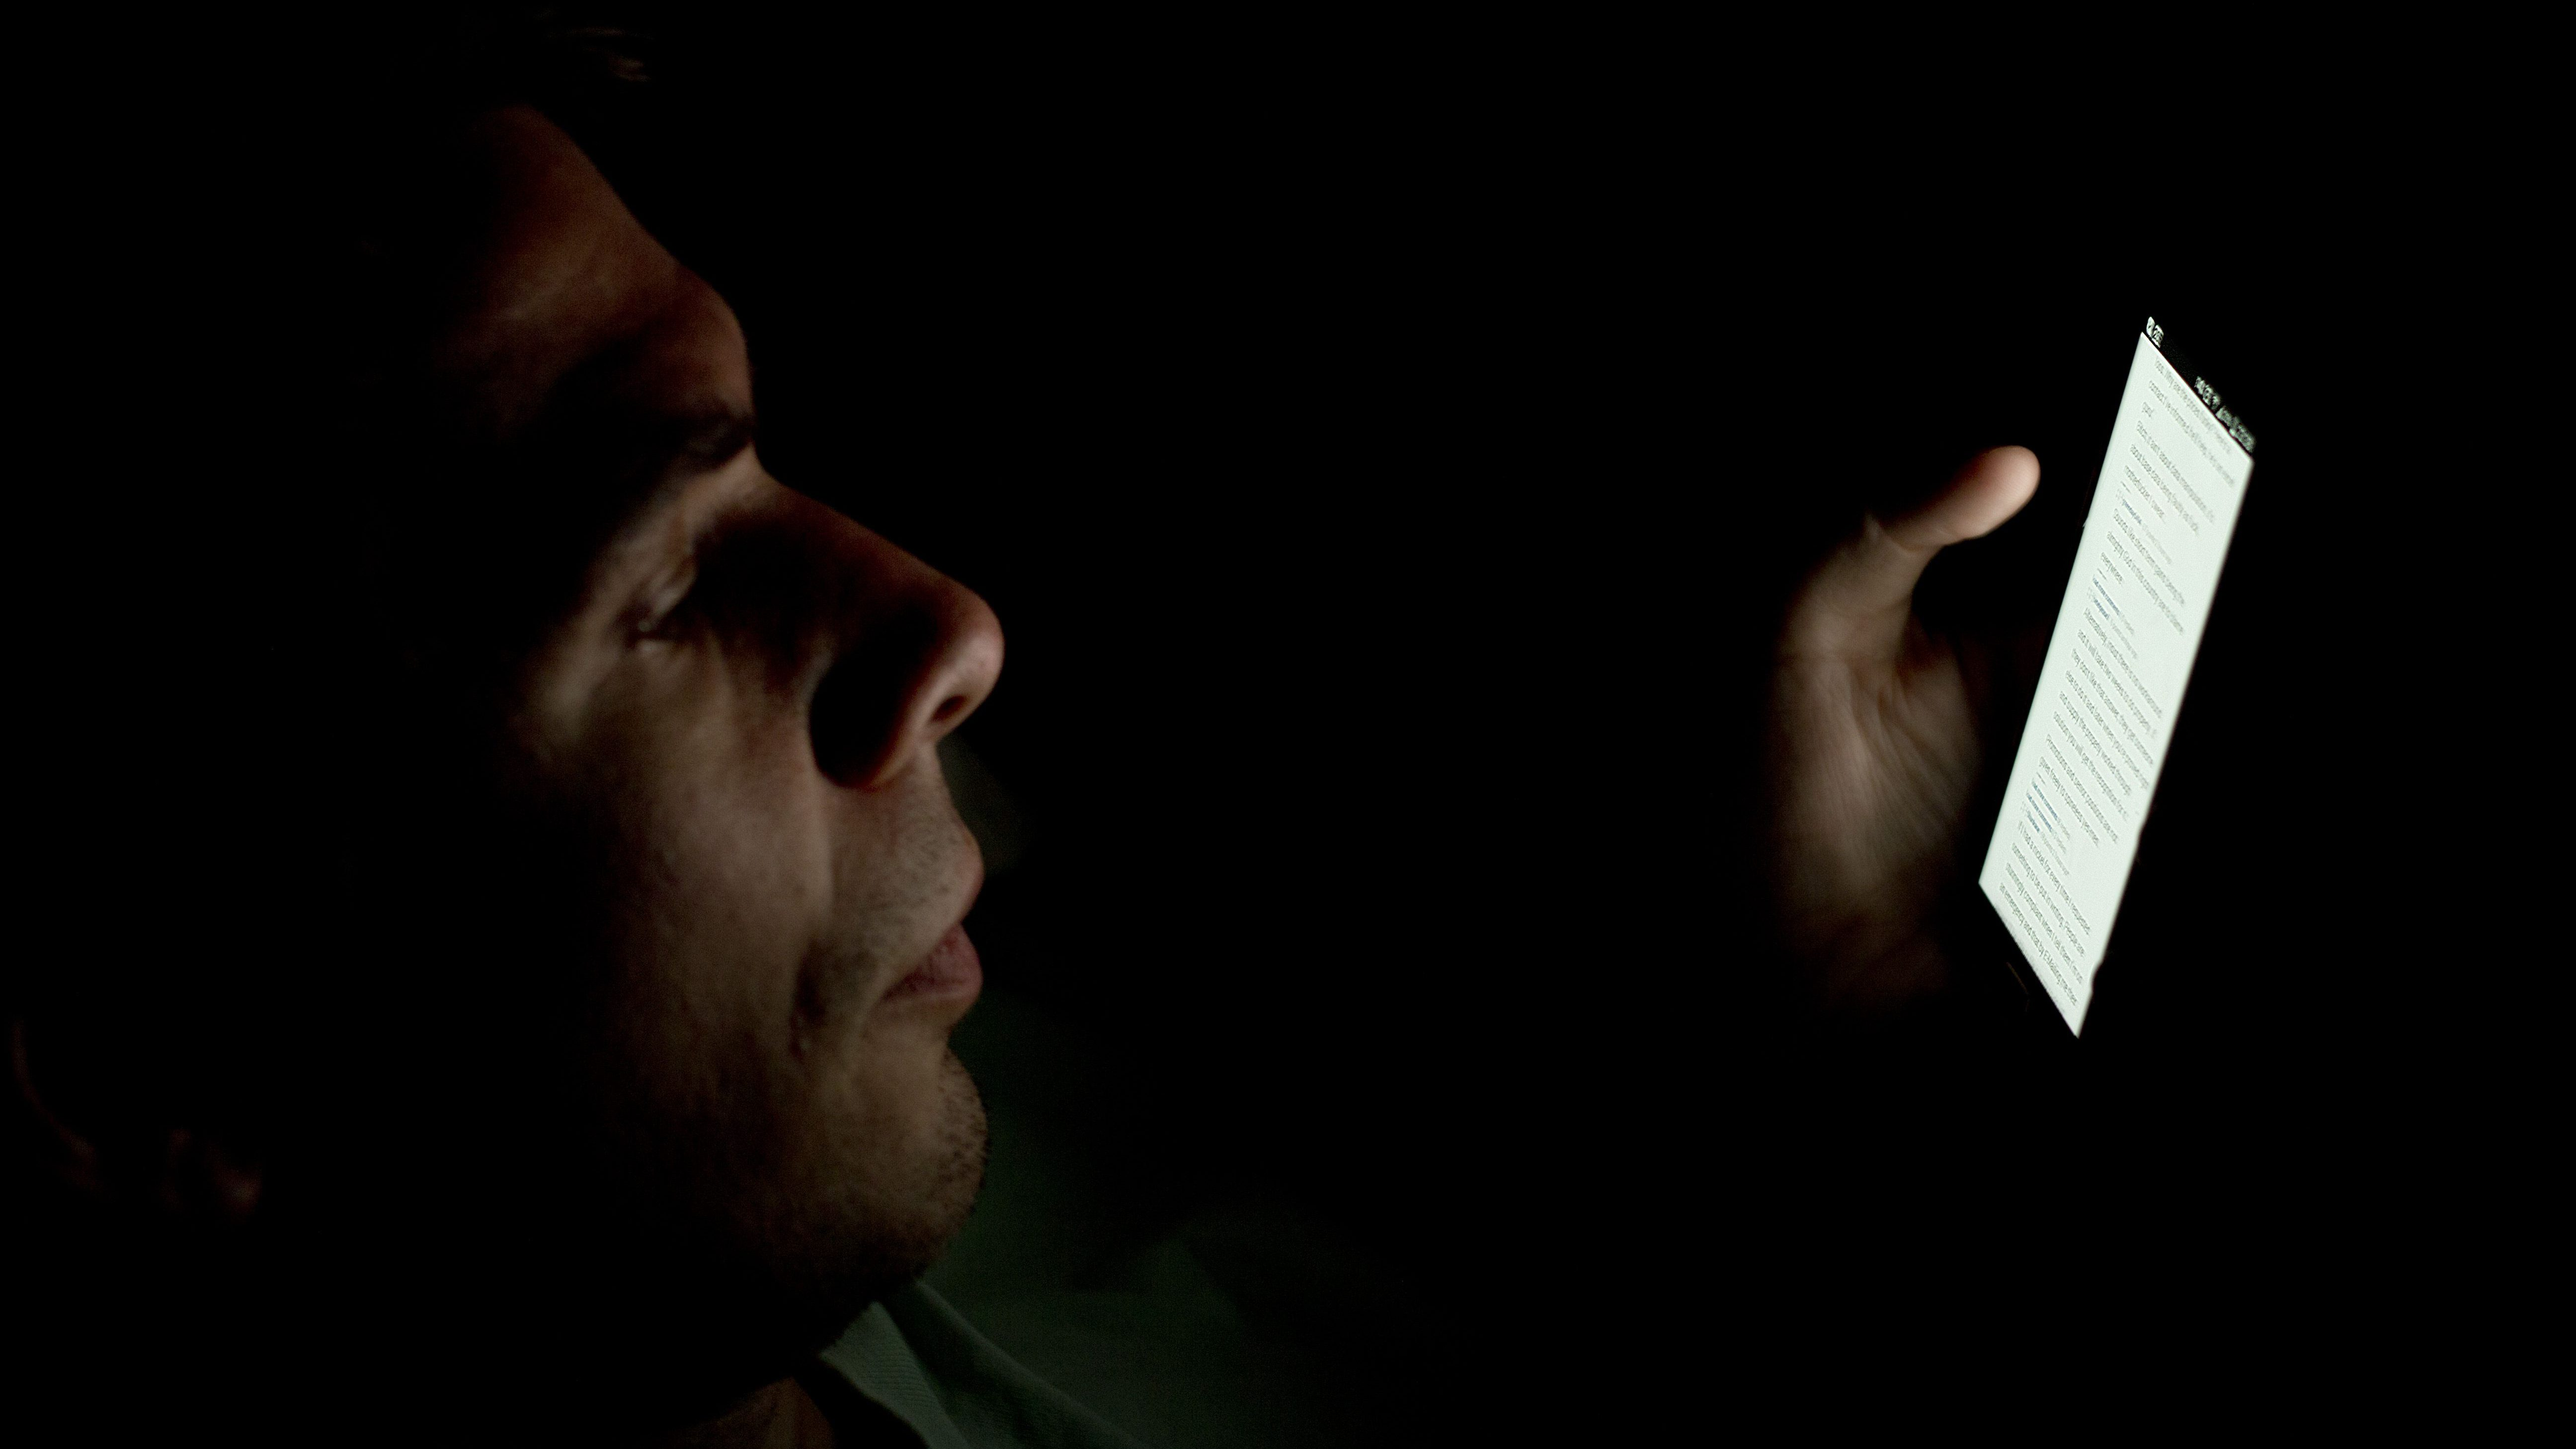 person_looking_at_smartphone_in_the_dark_2